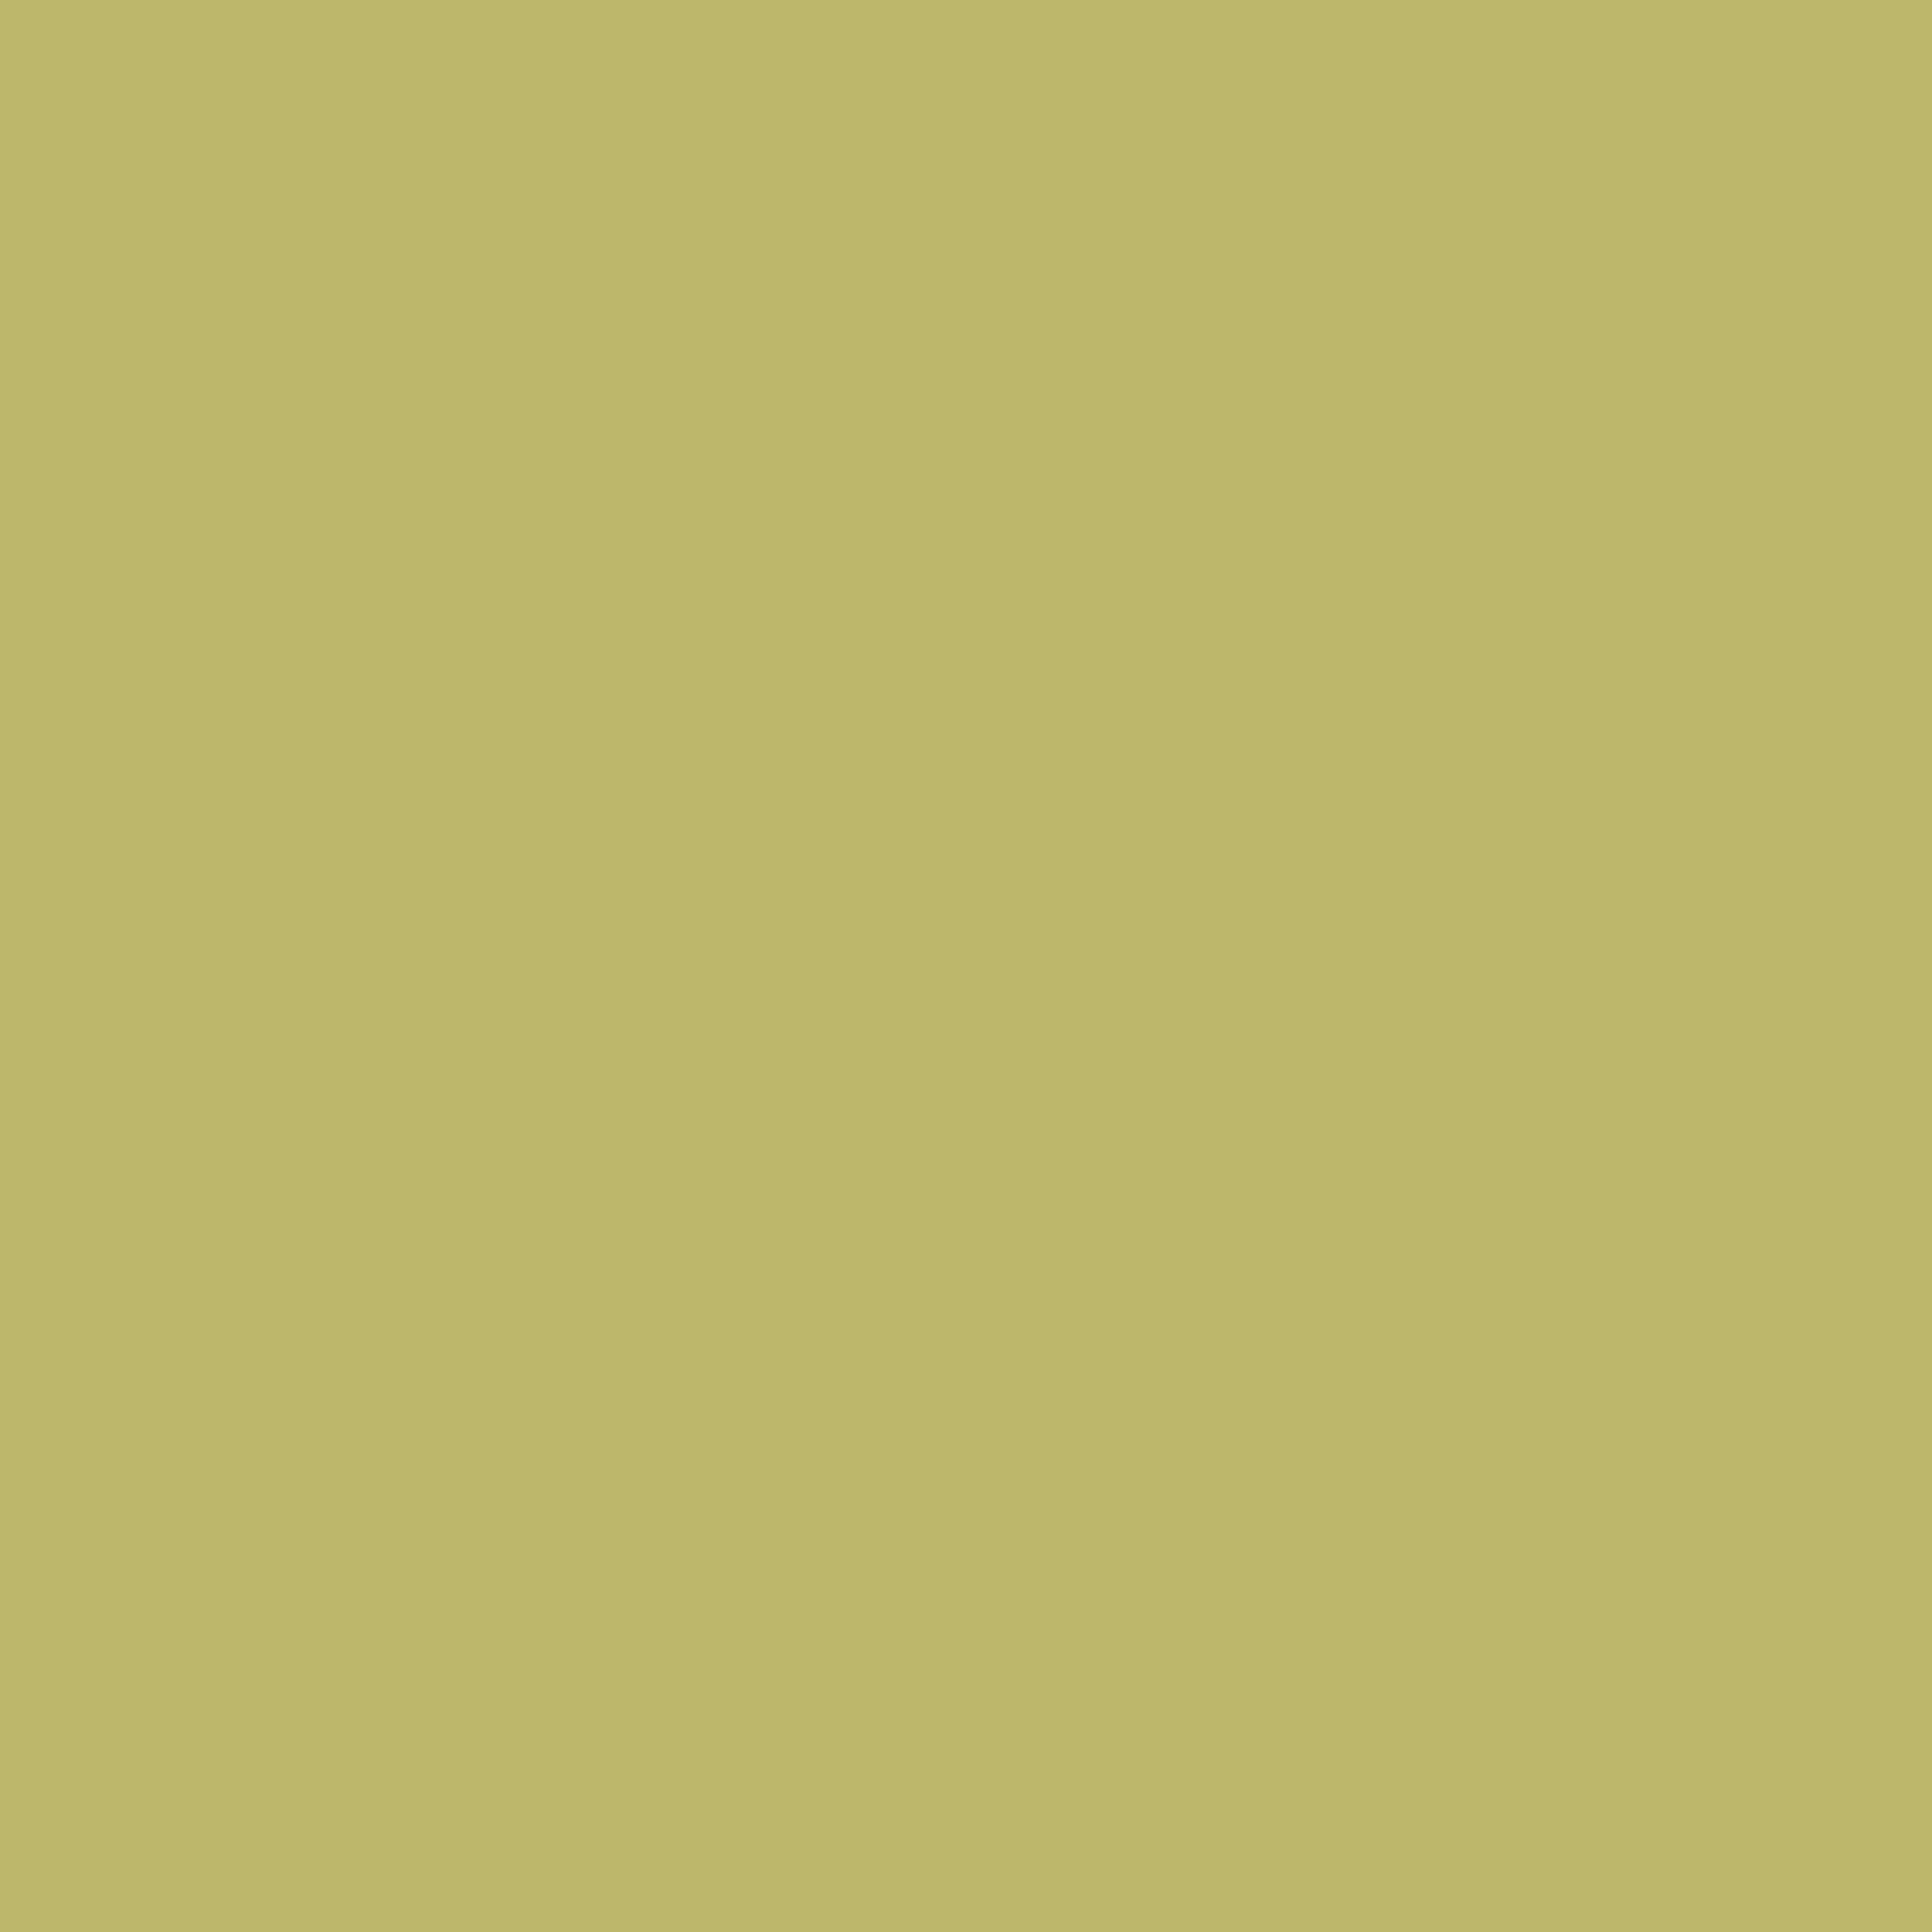 2732x2732 Dark Khaki Solid Color Background